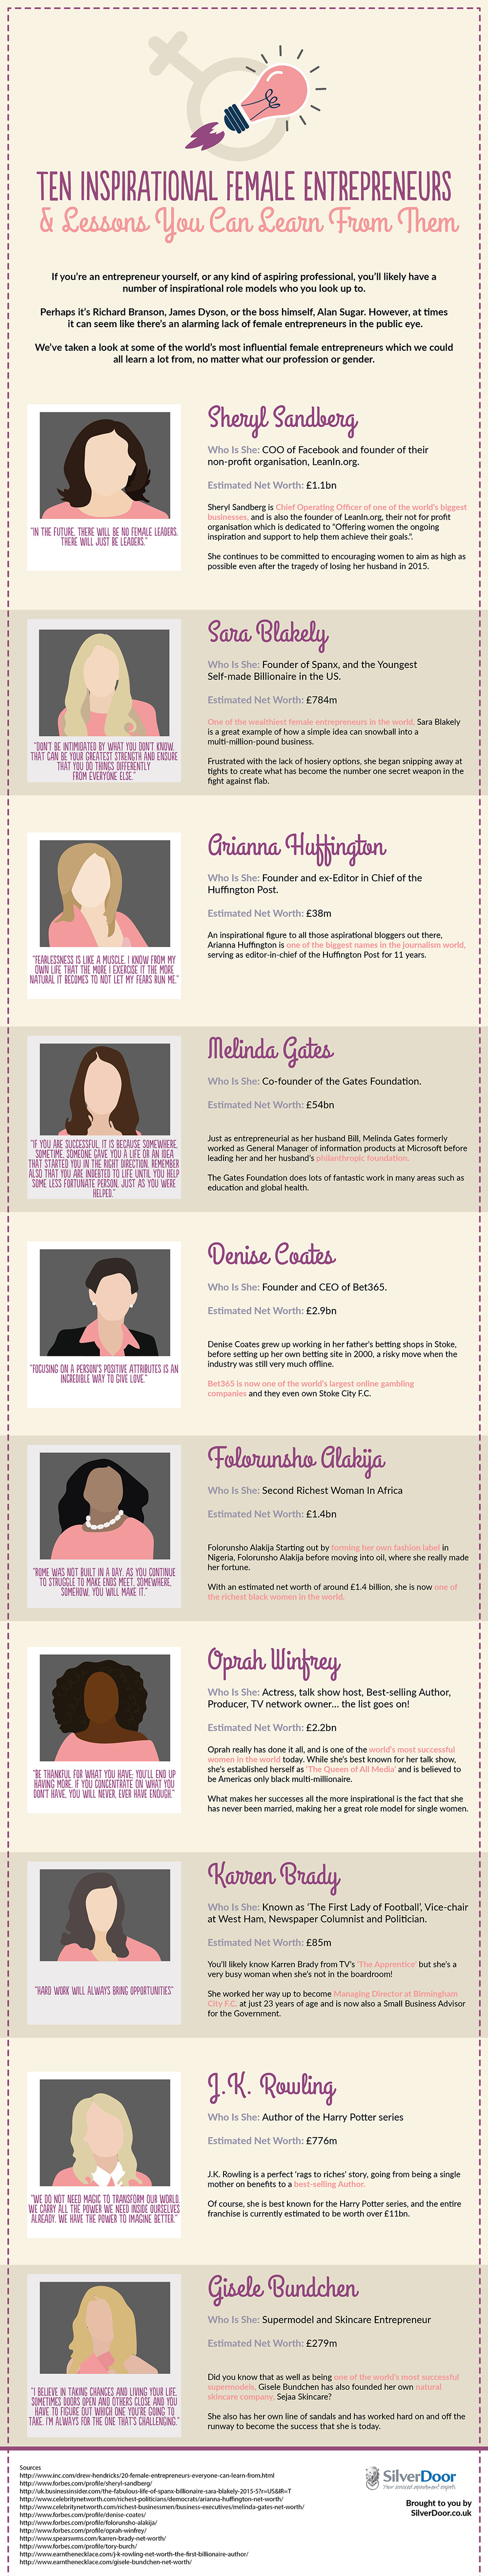 10 Inspirational Female Entrepreneurs & Lessons You Can Learn From Them (INFOGRAPHIC)